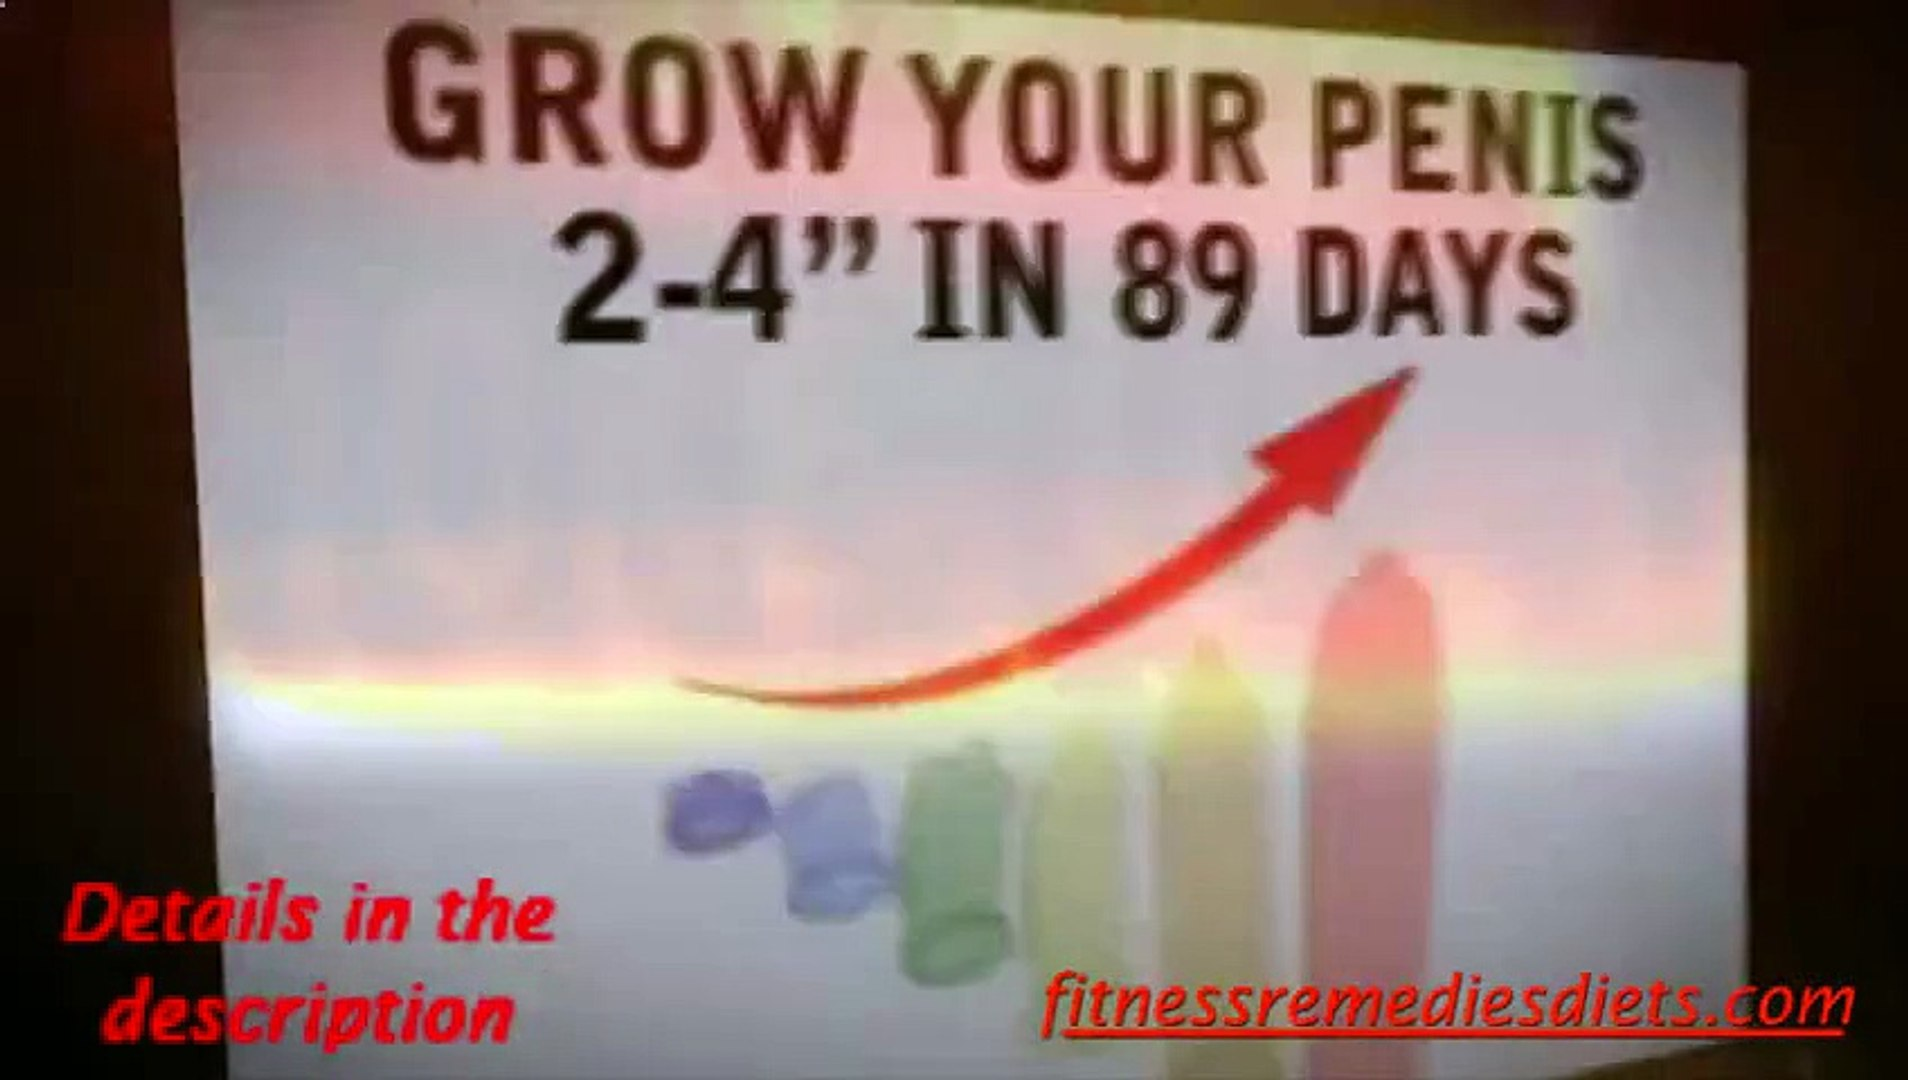 To your penis grow tricks make Here's How